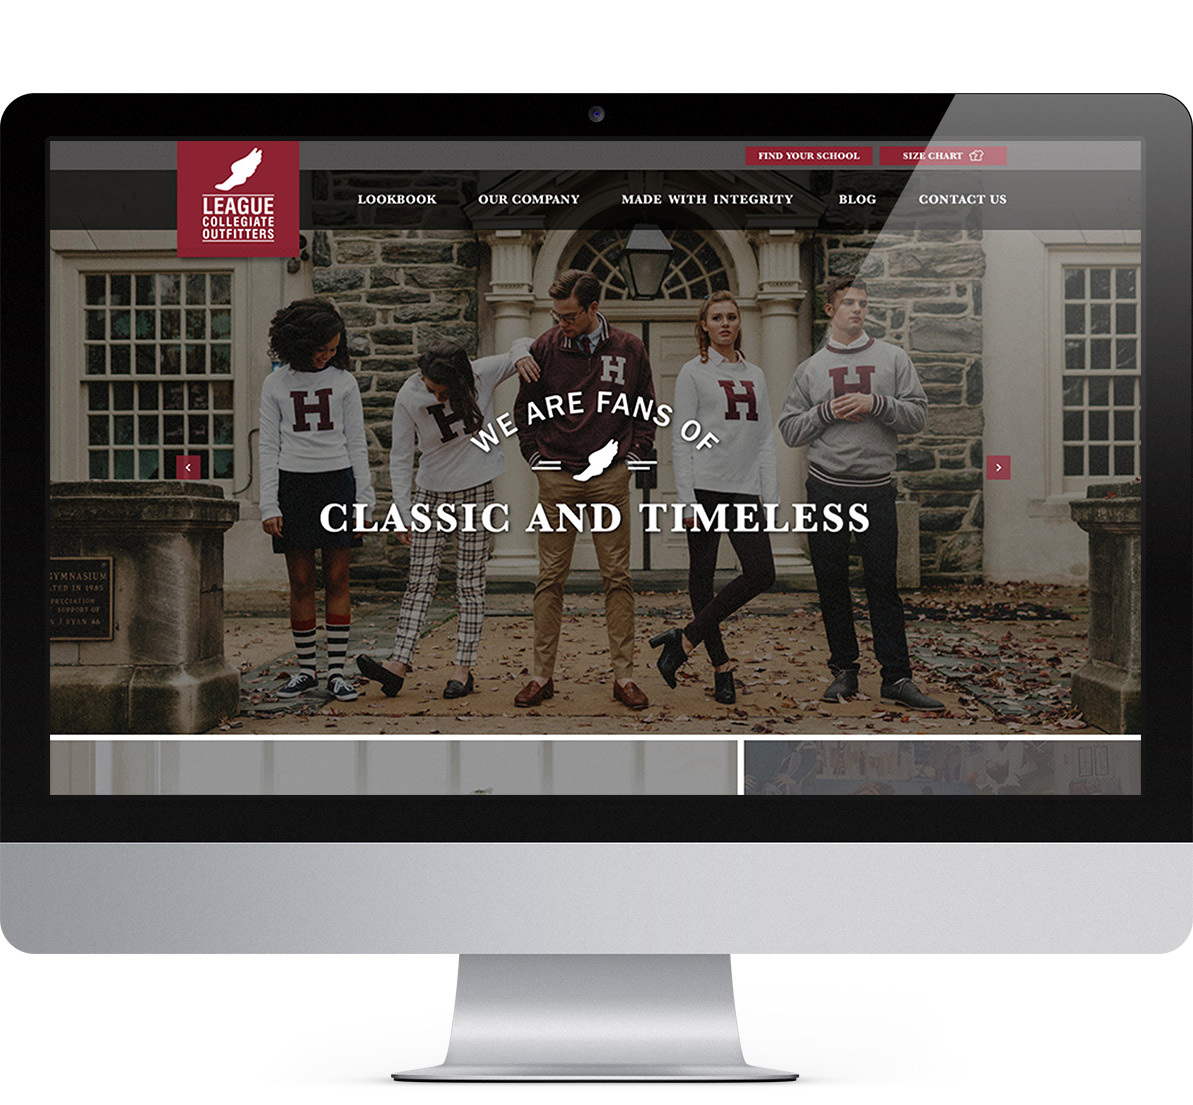 colorado web design project for league collegiate outfitters